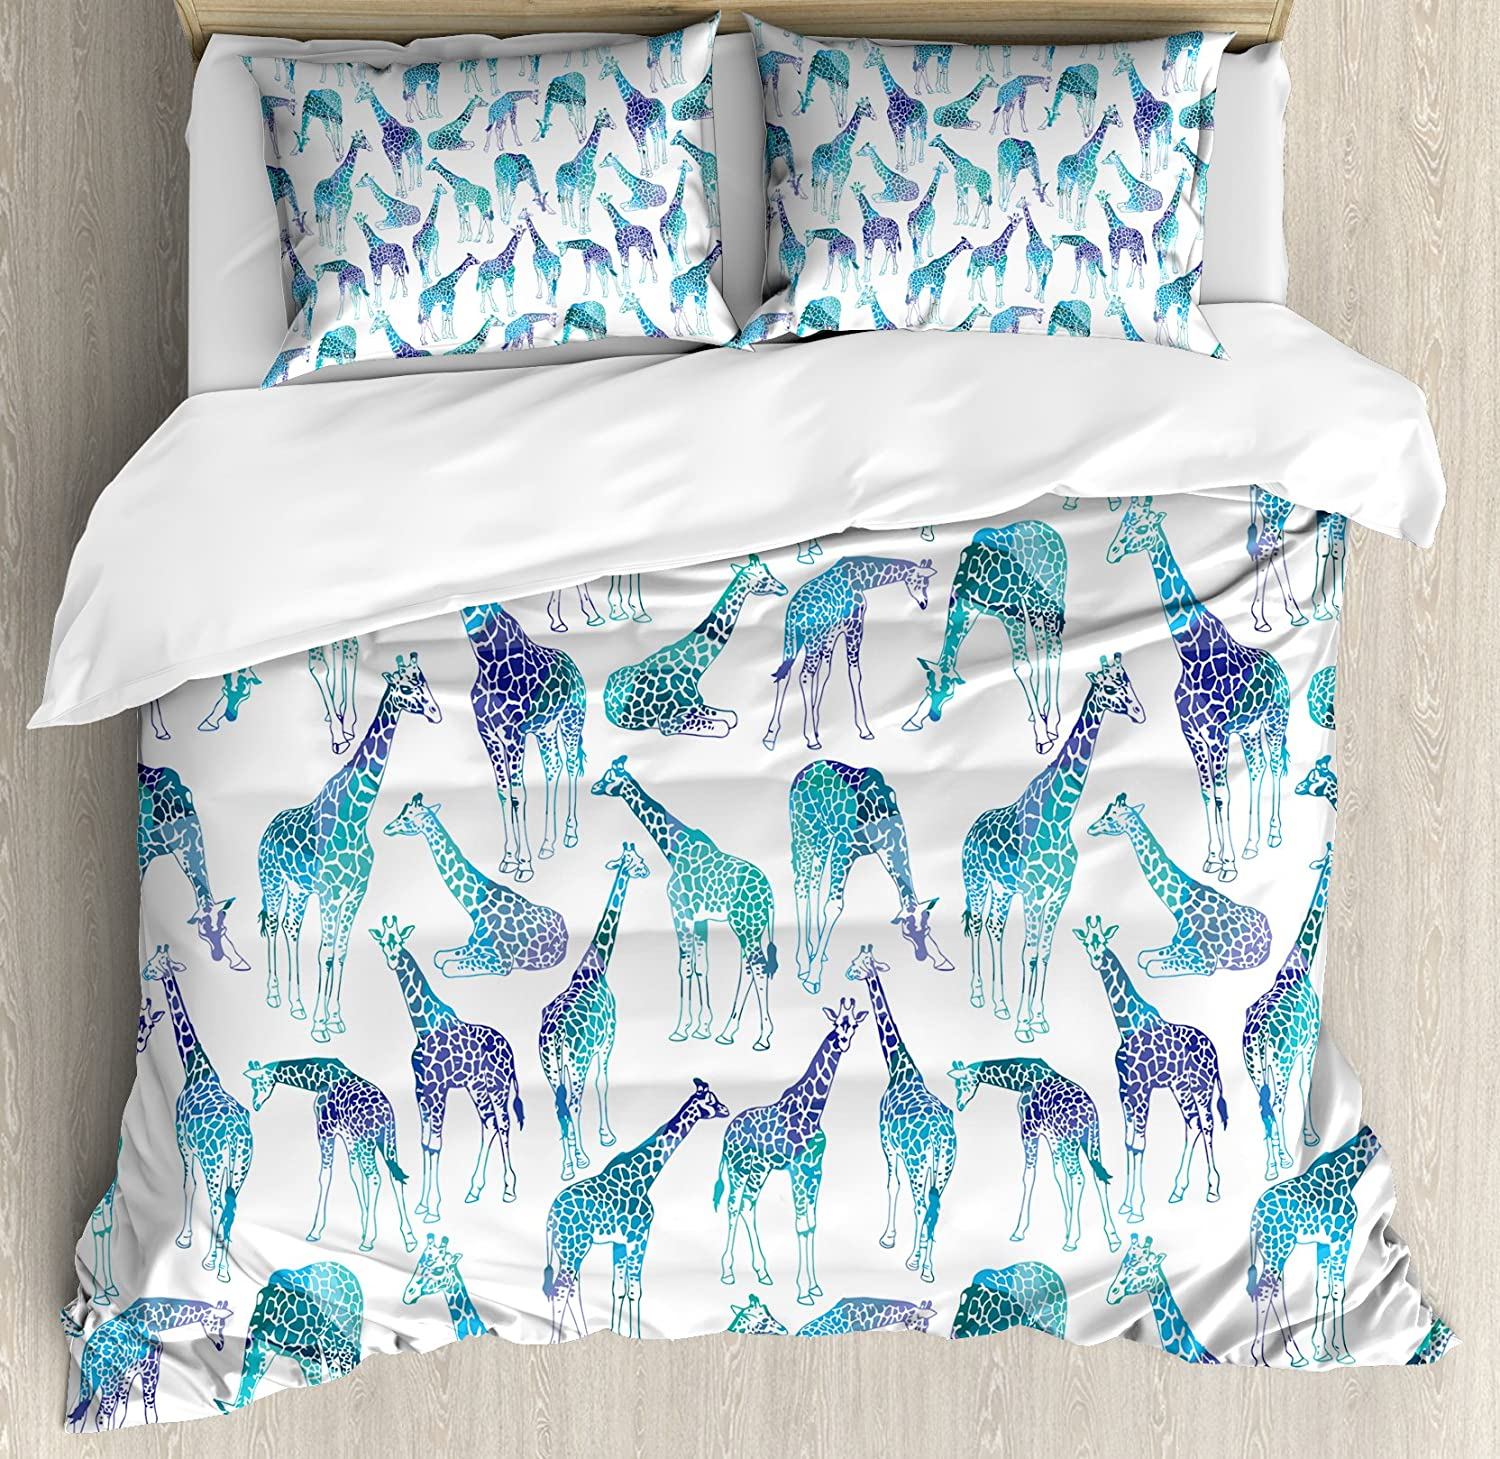 Lunarable Giraffe Duvet Cover Set, Abstract Animal Various Poses Sitting Eating Walking Inspiration, Decorative 3 Piece Bedding Set with 2 Pillow Shams, Queen Size, Blue